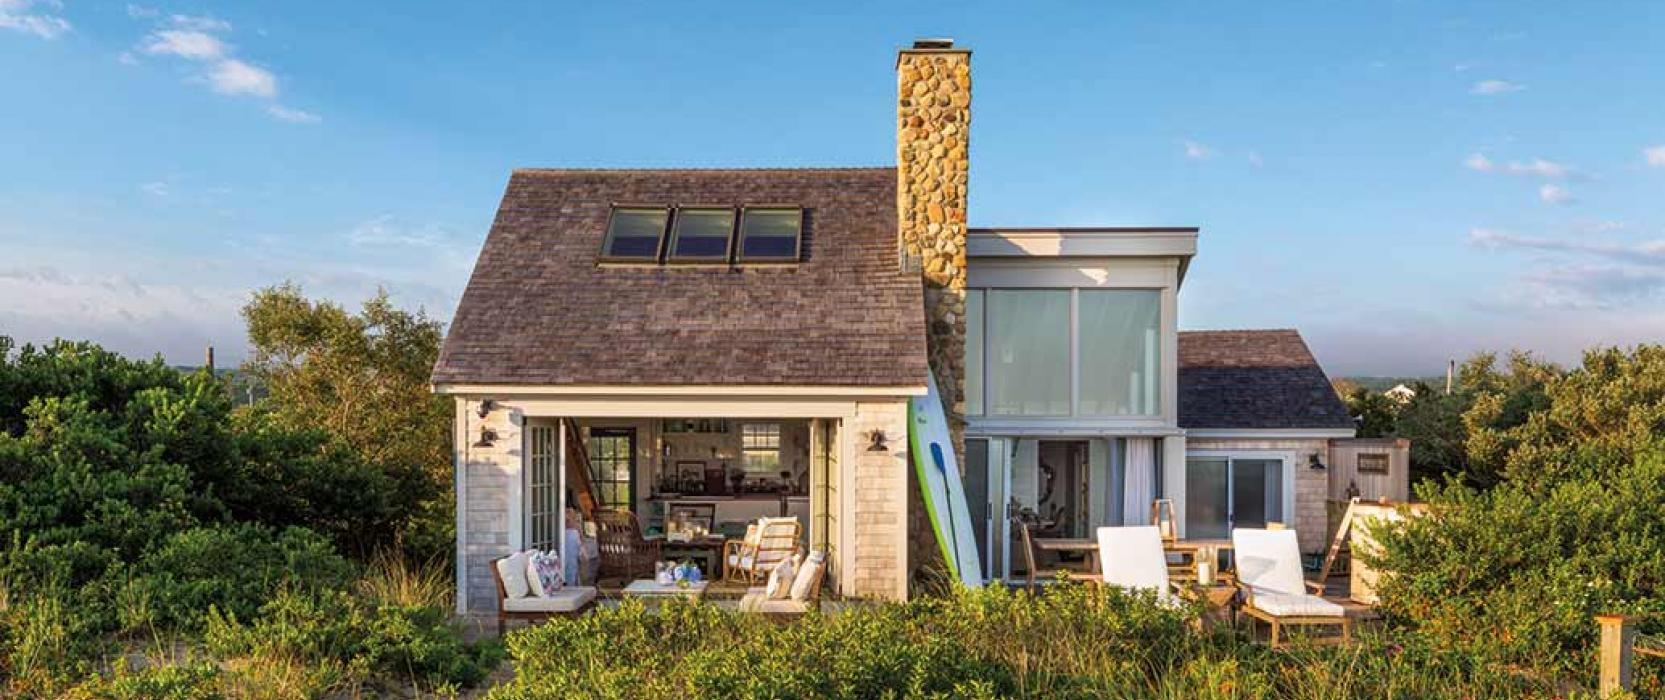 Martha's Vineyard waterfront cottages